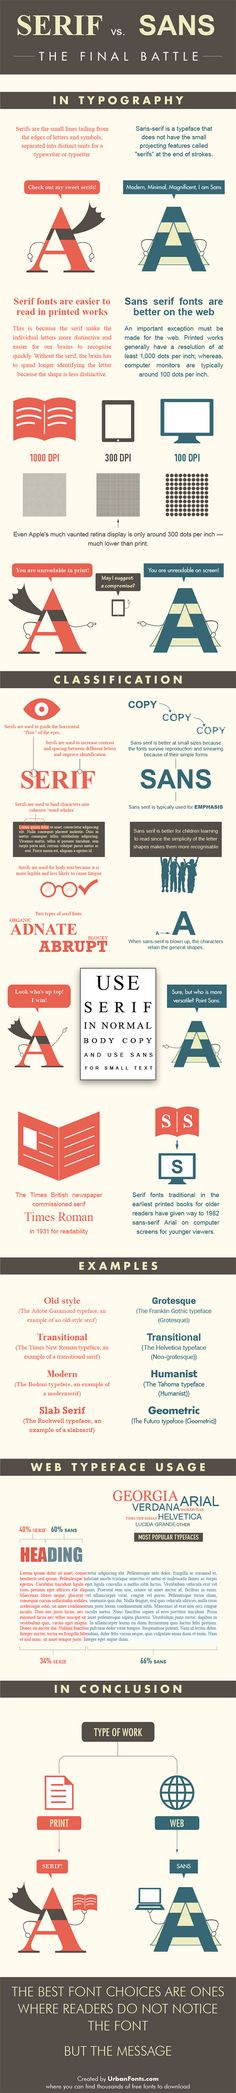 Serif vs Sans: The Final Battle. This infographic explains the differences between serif and sans serif fonts. You'll learn when to use one over the other as well as examples and web usages. Graphisches Design, Graphic Design Tips, Graphic Design Typography, Graphic Design Inspiration, Design Elements, Architectural Font, Architectural Drawings, Graphics, Tutorials